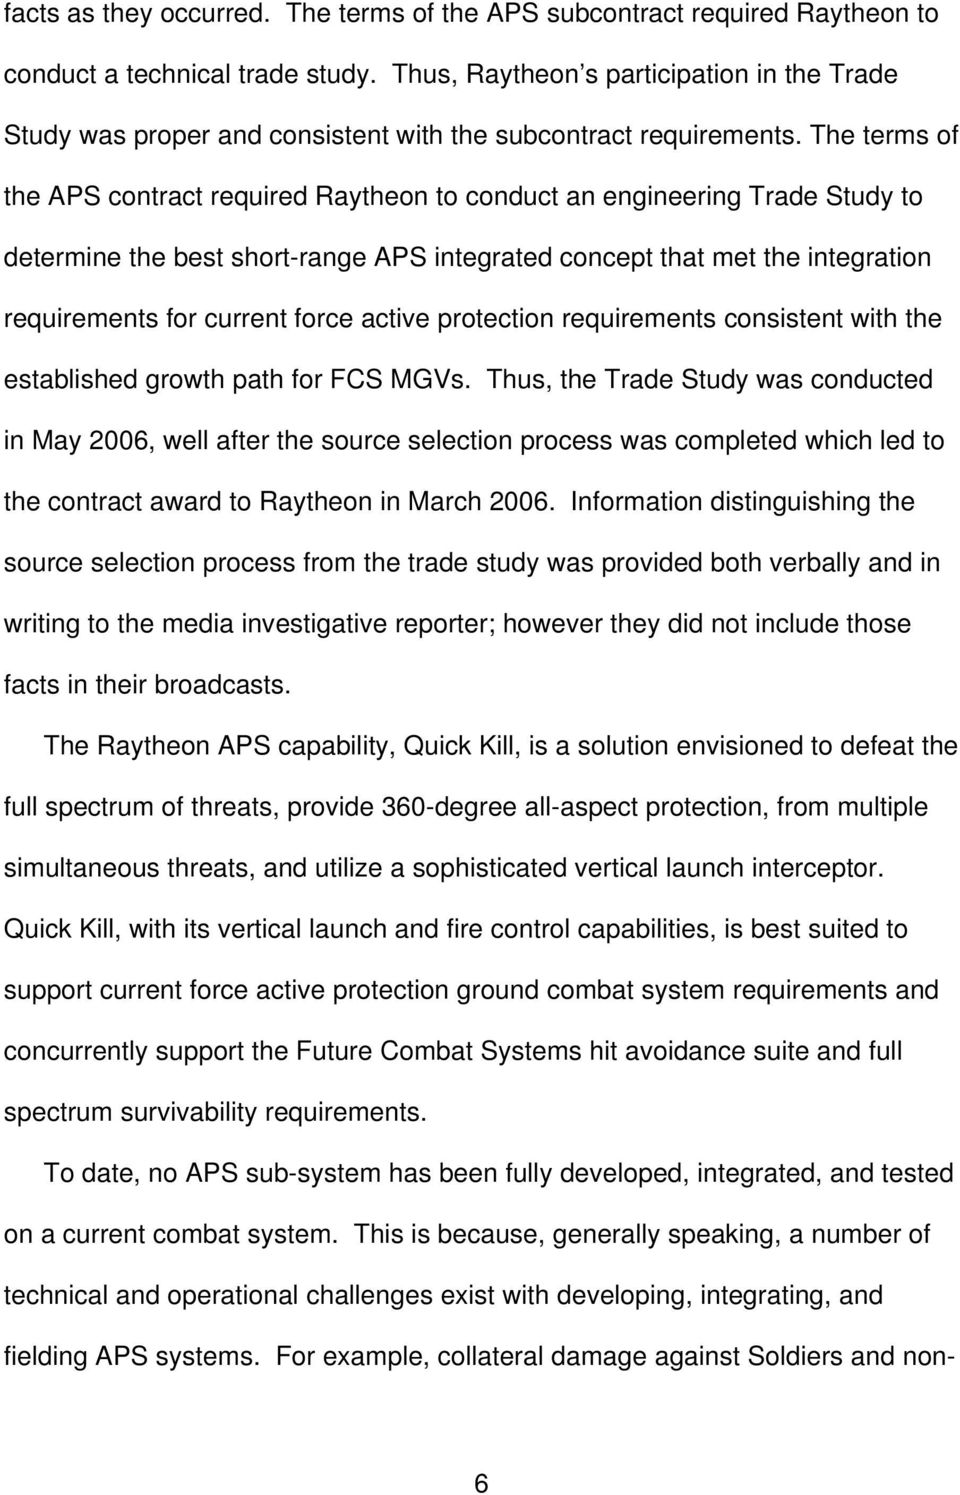 The terms of the APS contract required Raytheon to conduct an engineering Trade Study to determine the best short-range APS integrated concept that met the integration requirements for current force